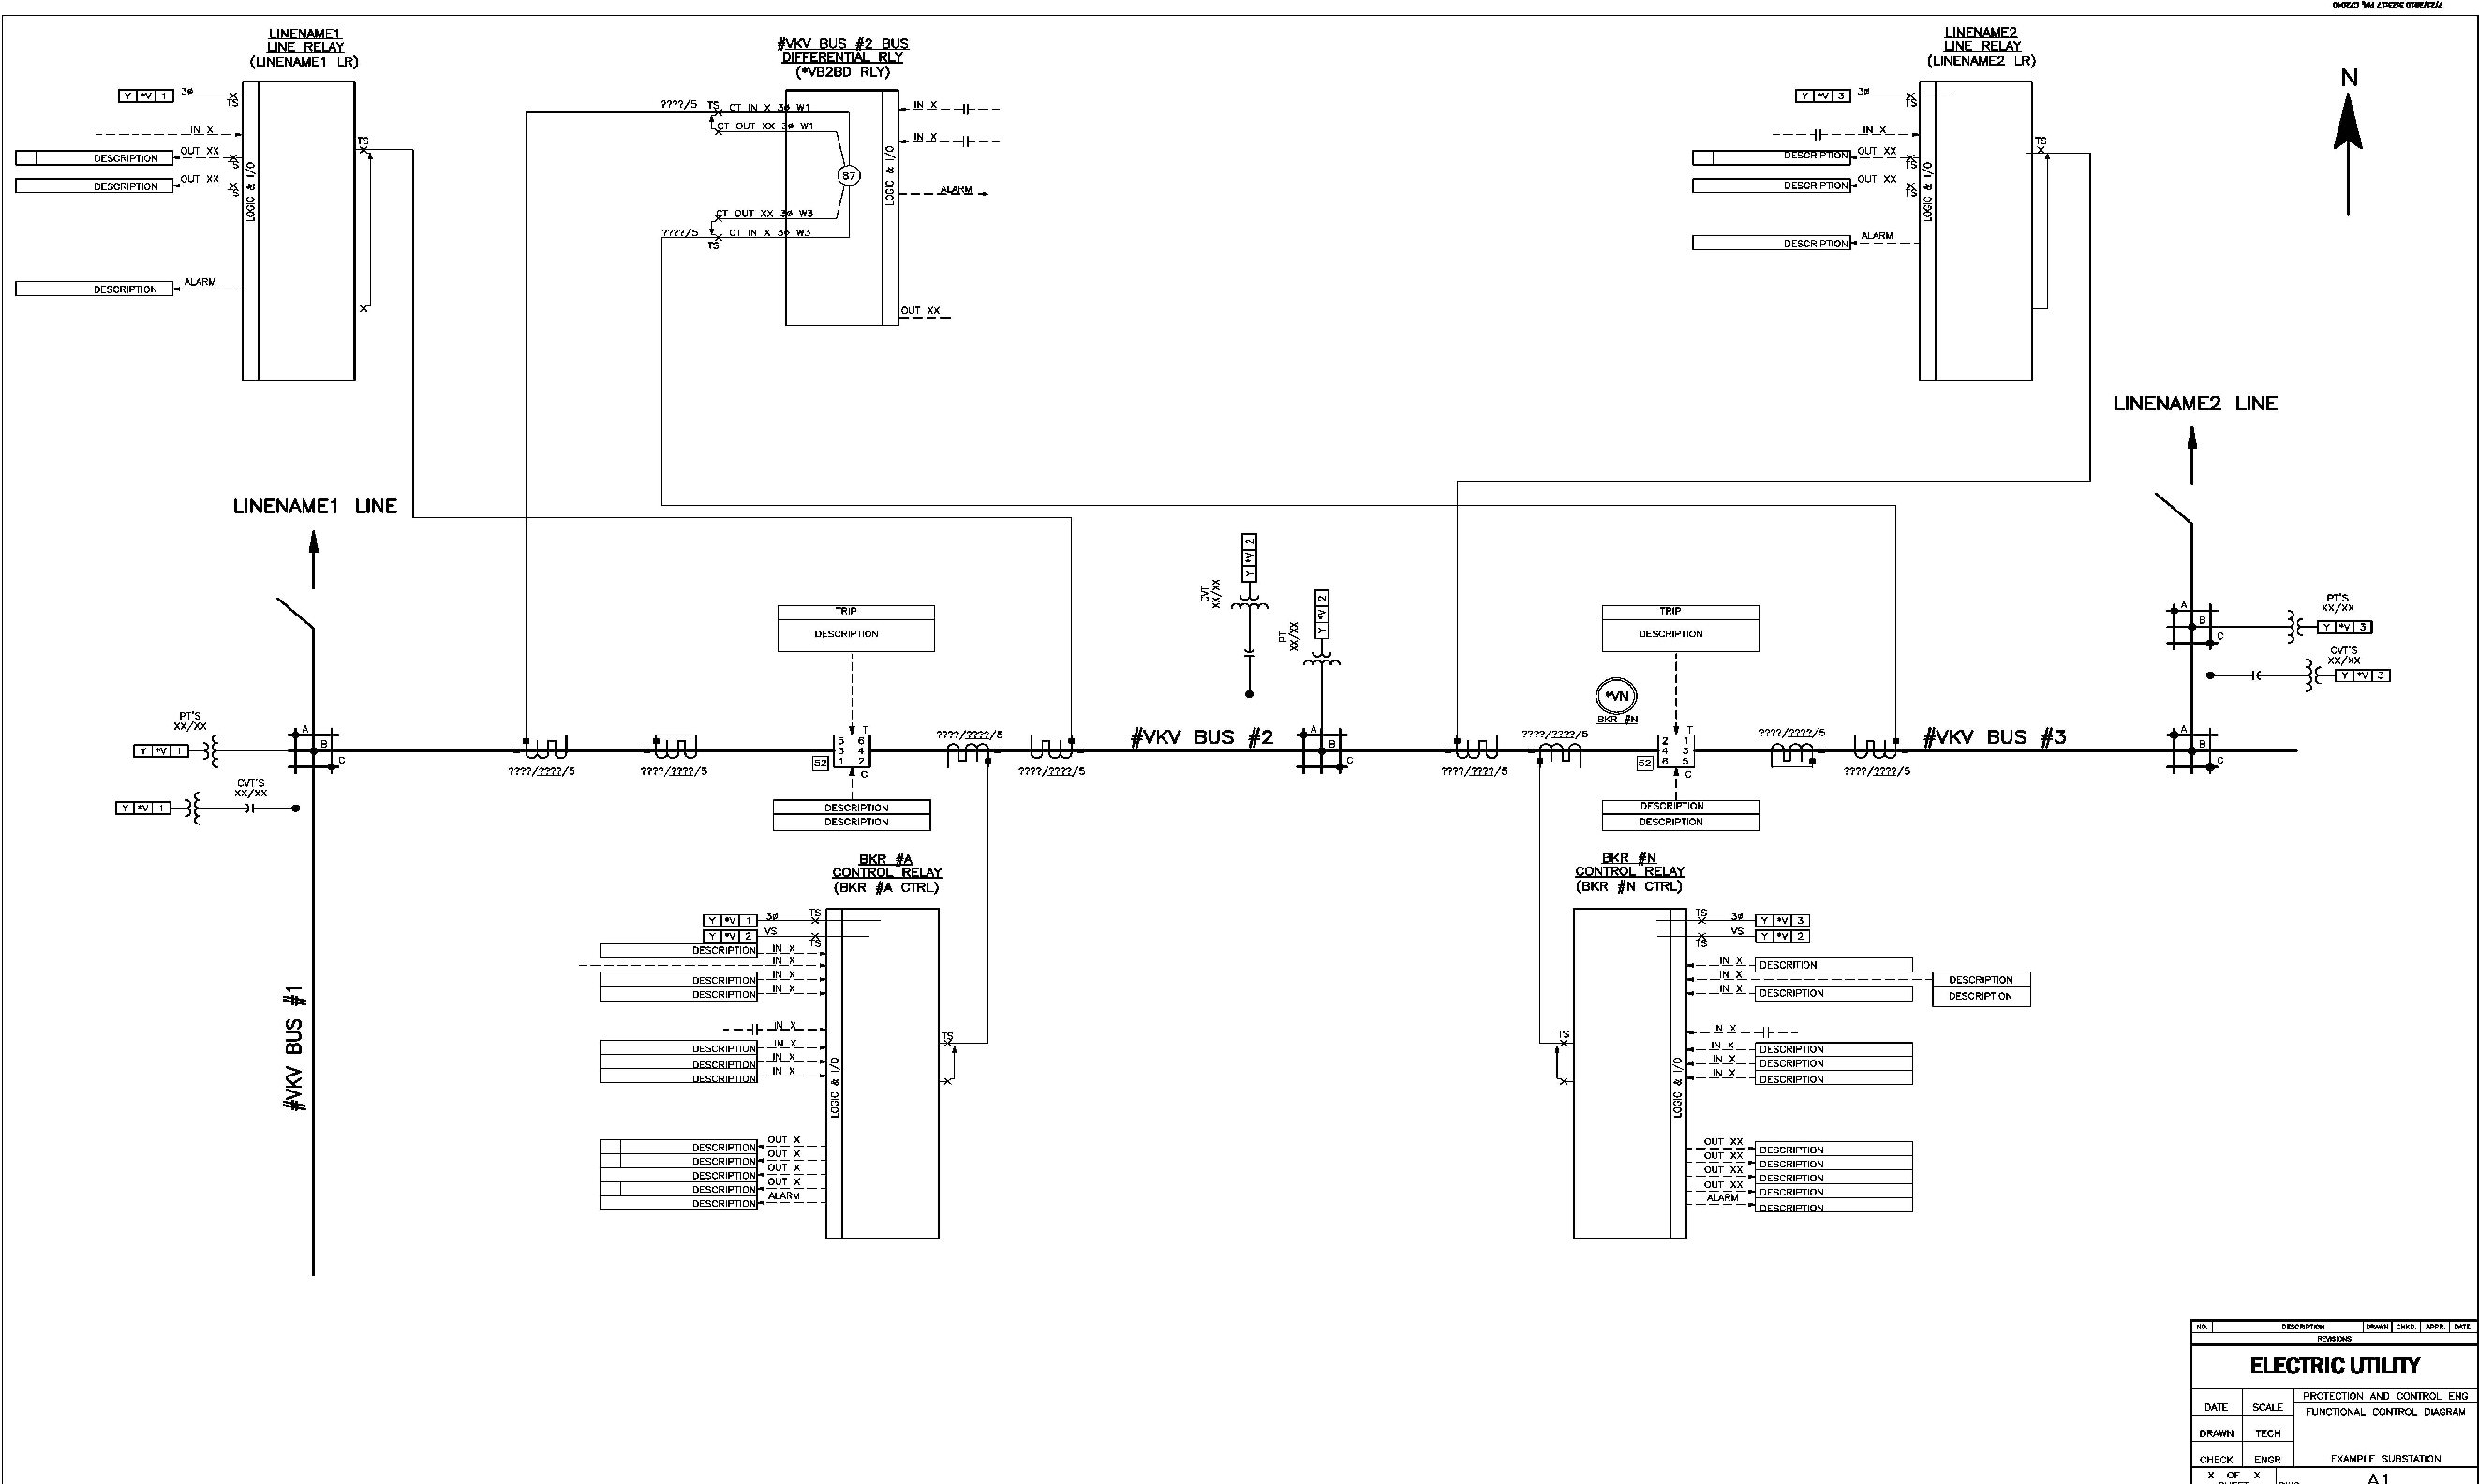 Figure 10 from Schematic representation of power system ... on